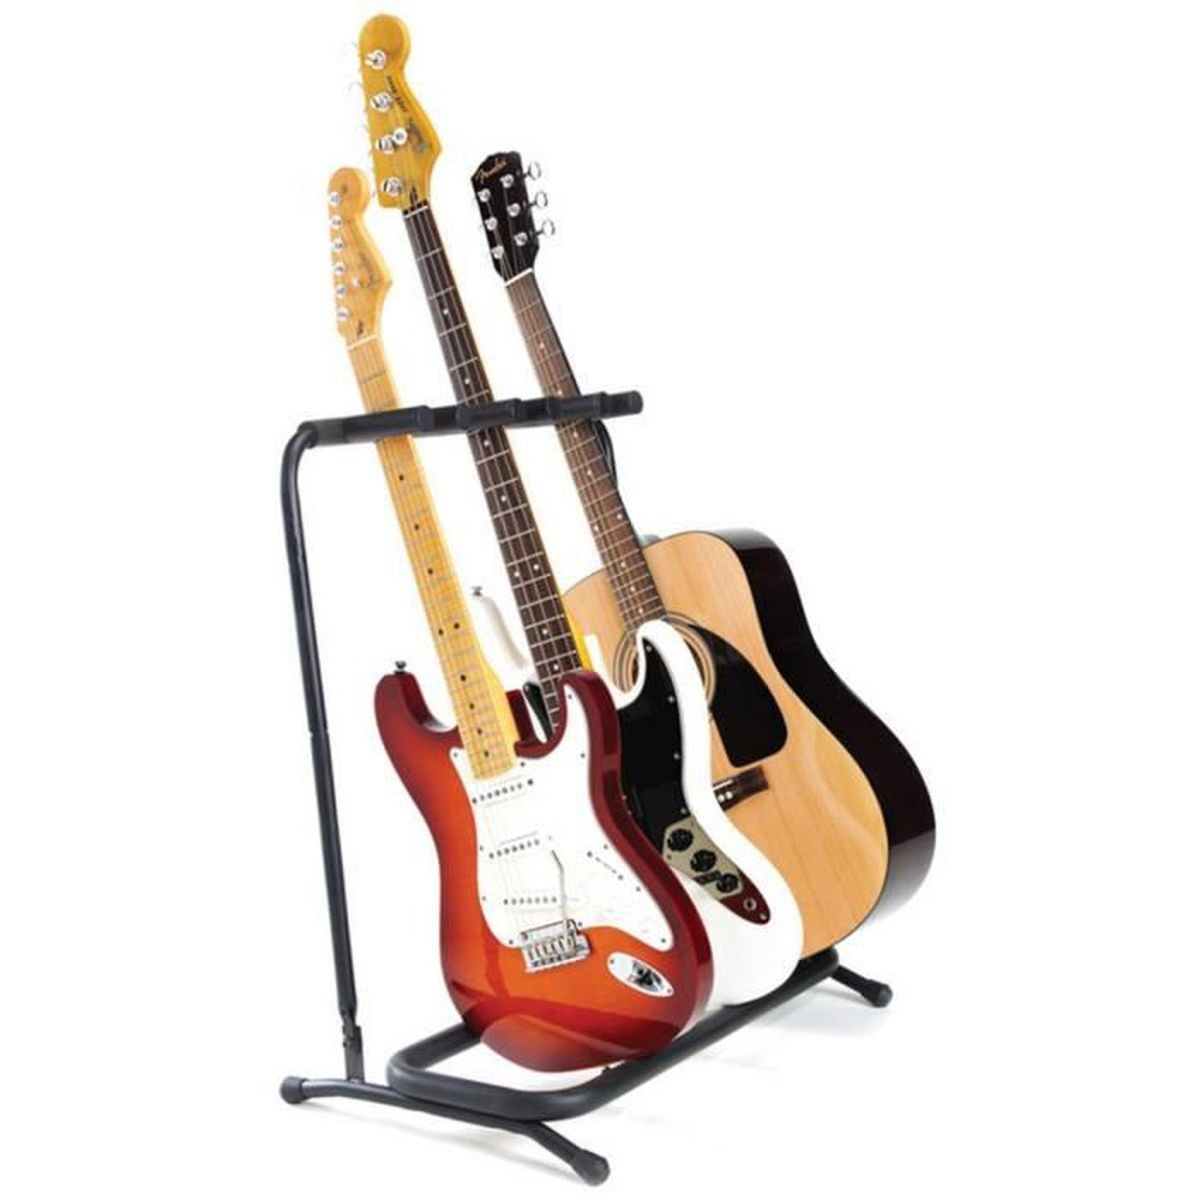 Kabalo Support Universel À X Convient Pliable Stand Guitare 3 Pour 6f7vYybg